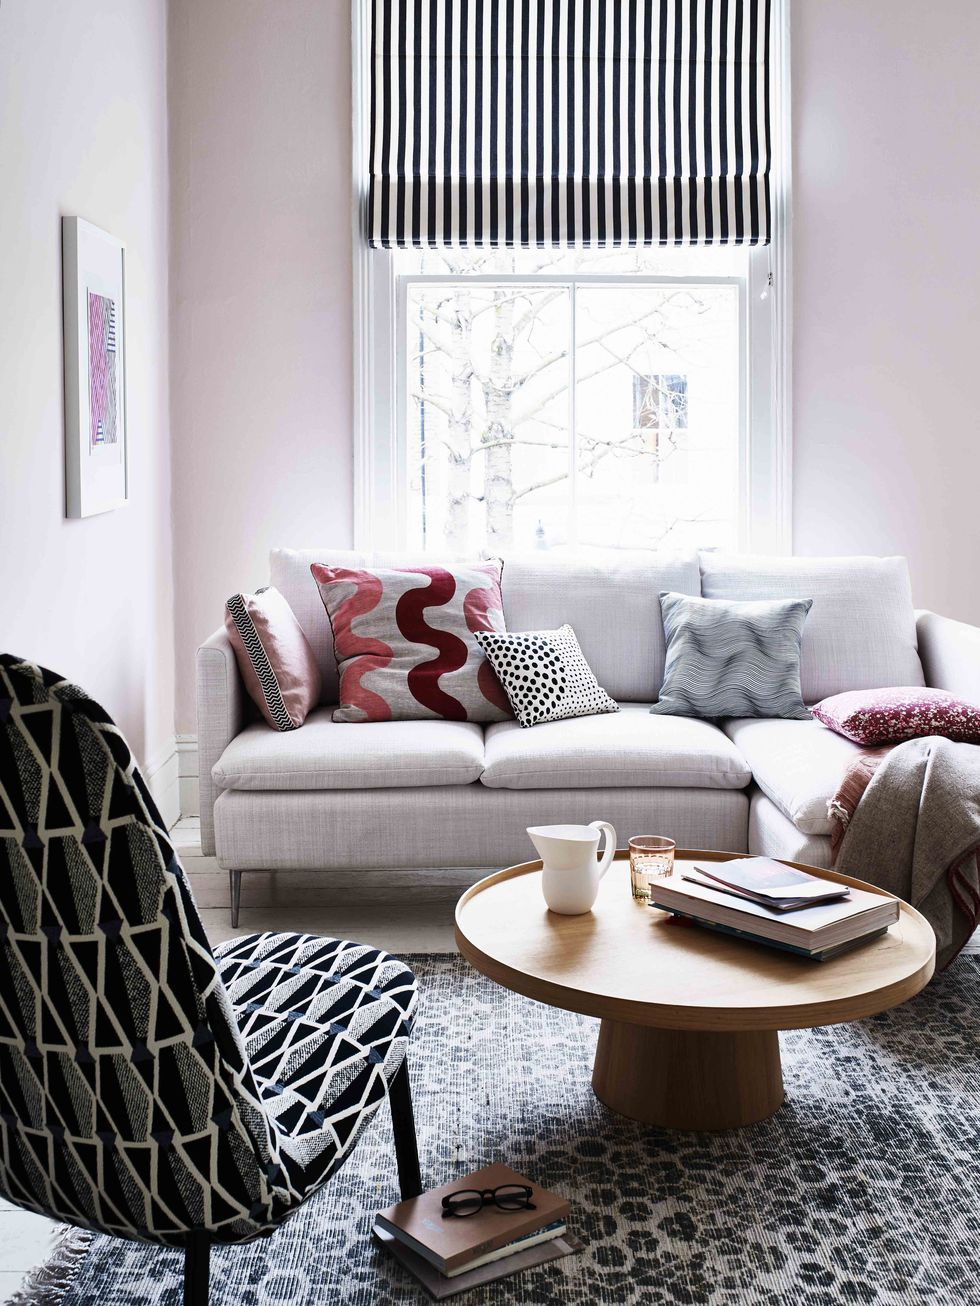 Living Room, Sitting Room, Front Room Or Lounge – What Do You Call This Communal Space?